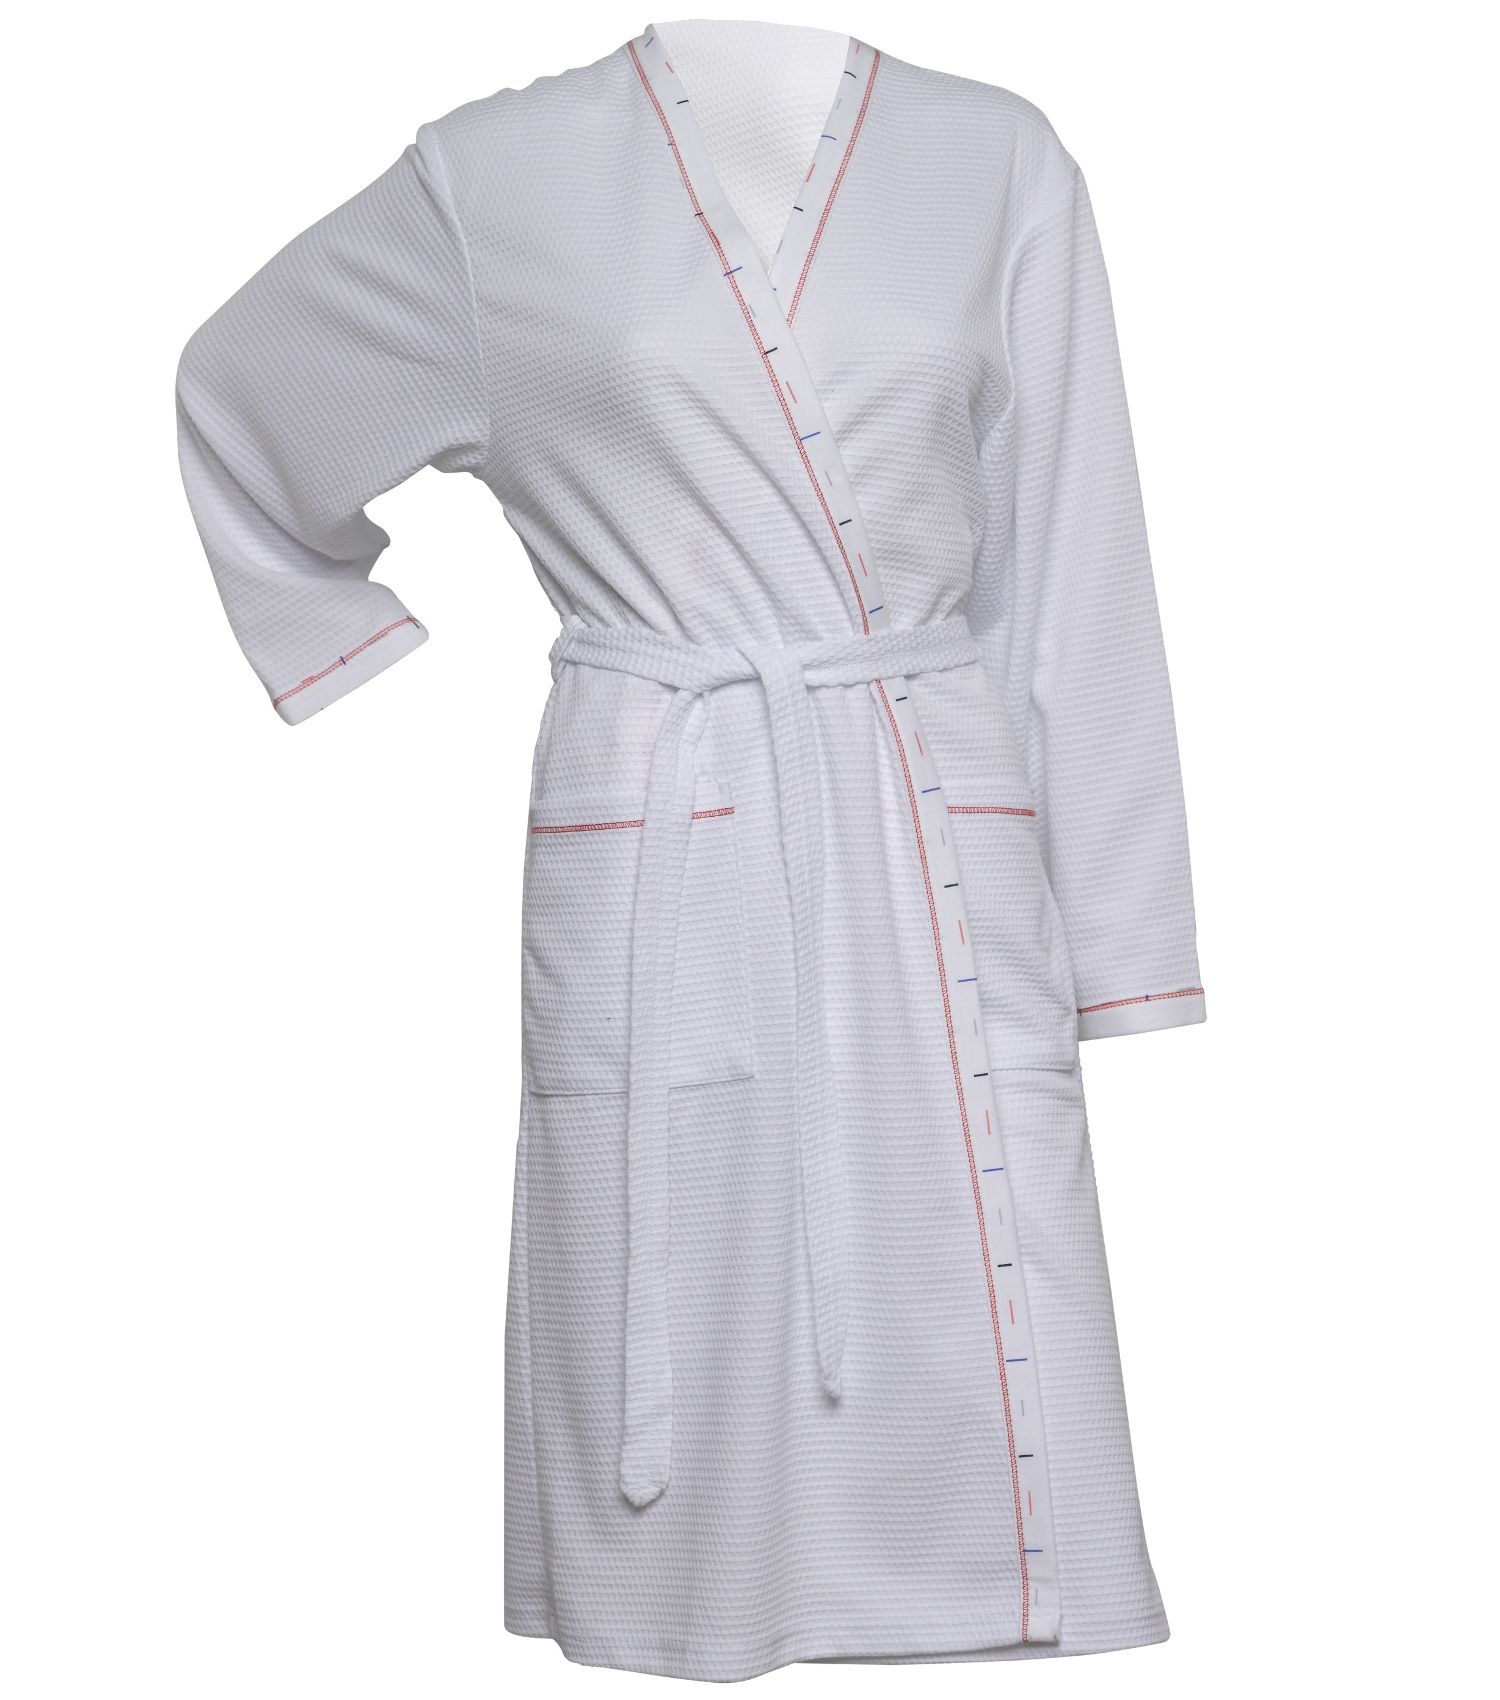 eec6df696c These ladies lightweight dressing gowns have a waffle pattern throughout  with a line pattern trim and red stitching detail